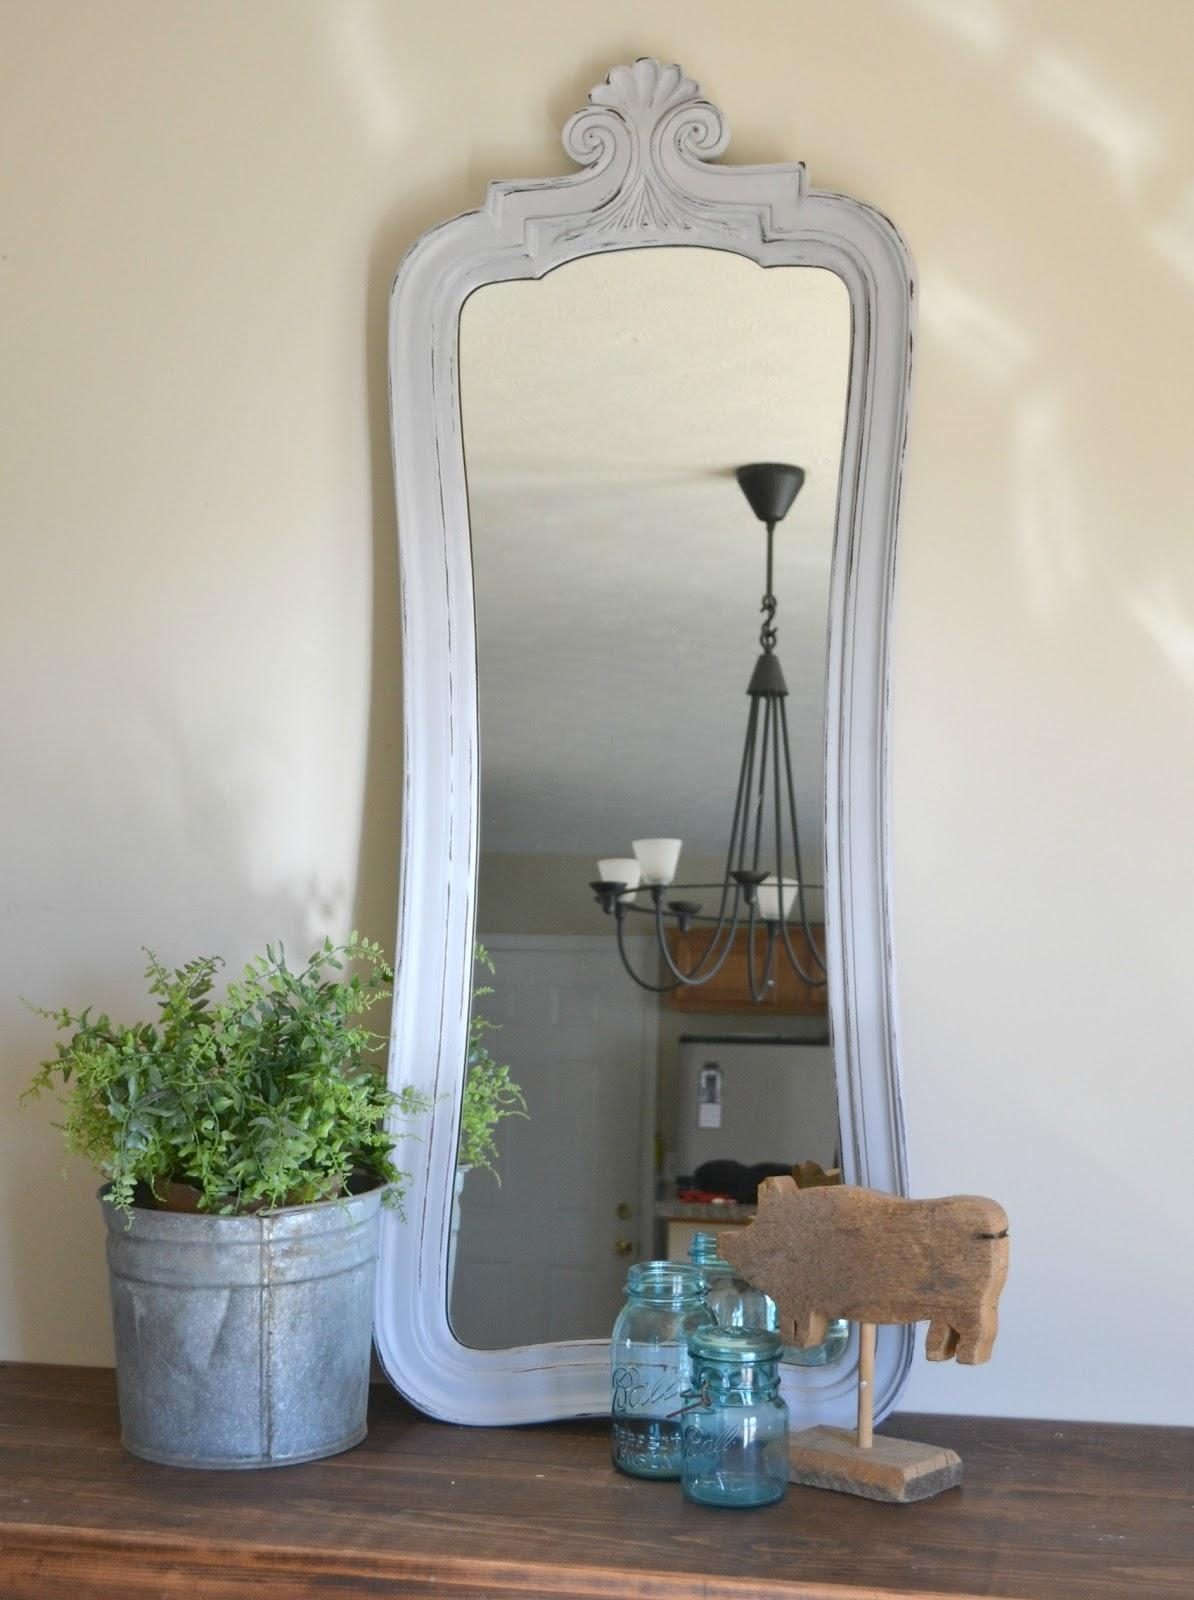 Antique Full Length Mirror 122 Inspiring Style For A French Inside French Style Full Length Mirror (Image 5 of 20)